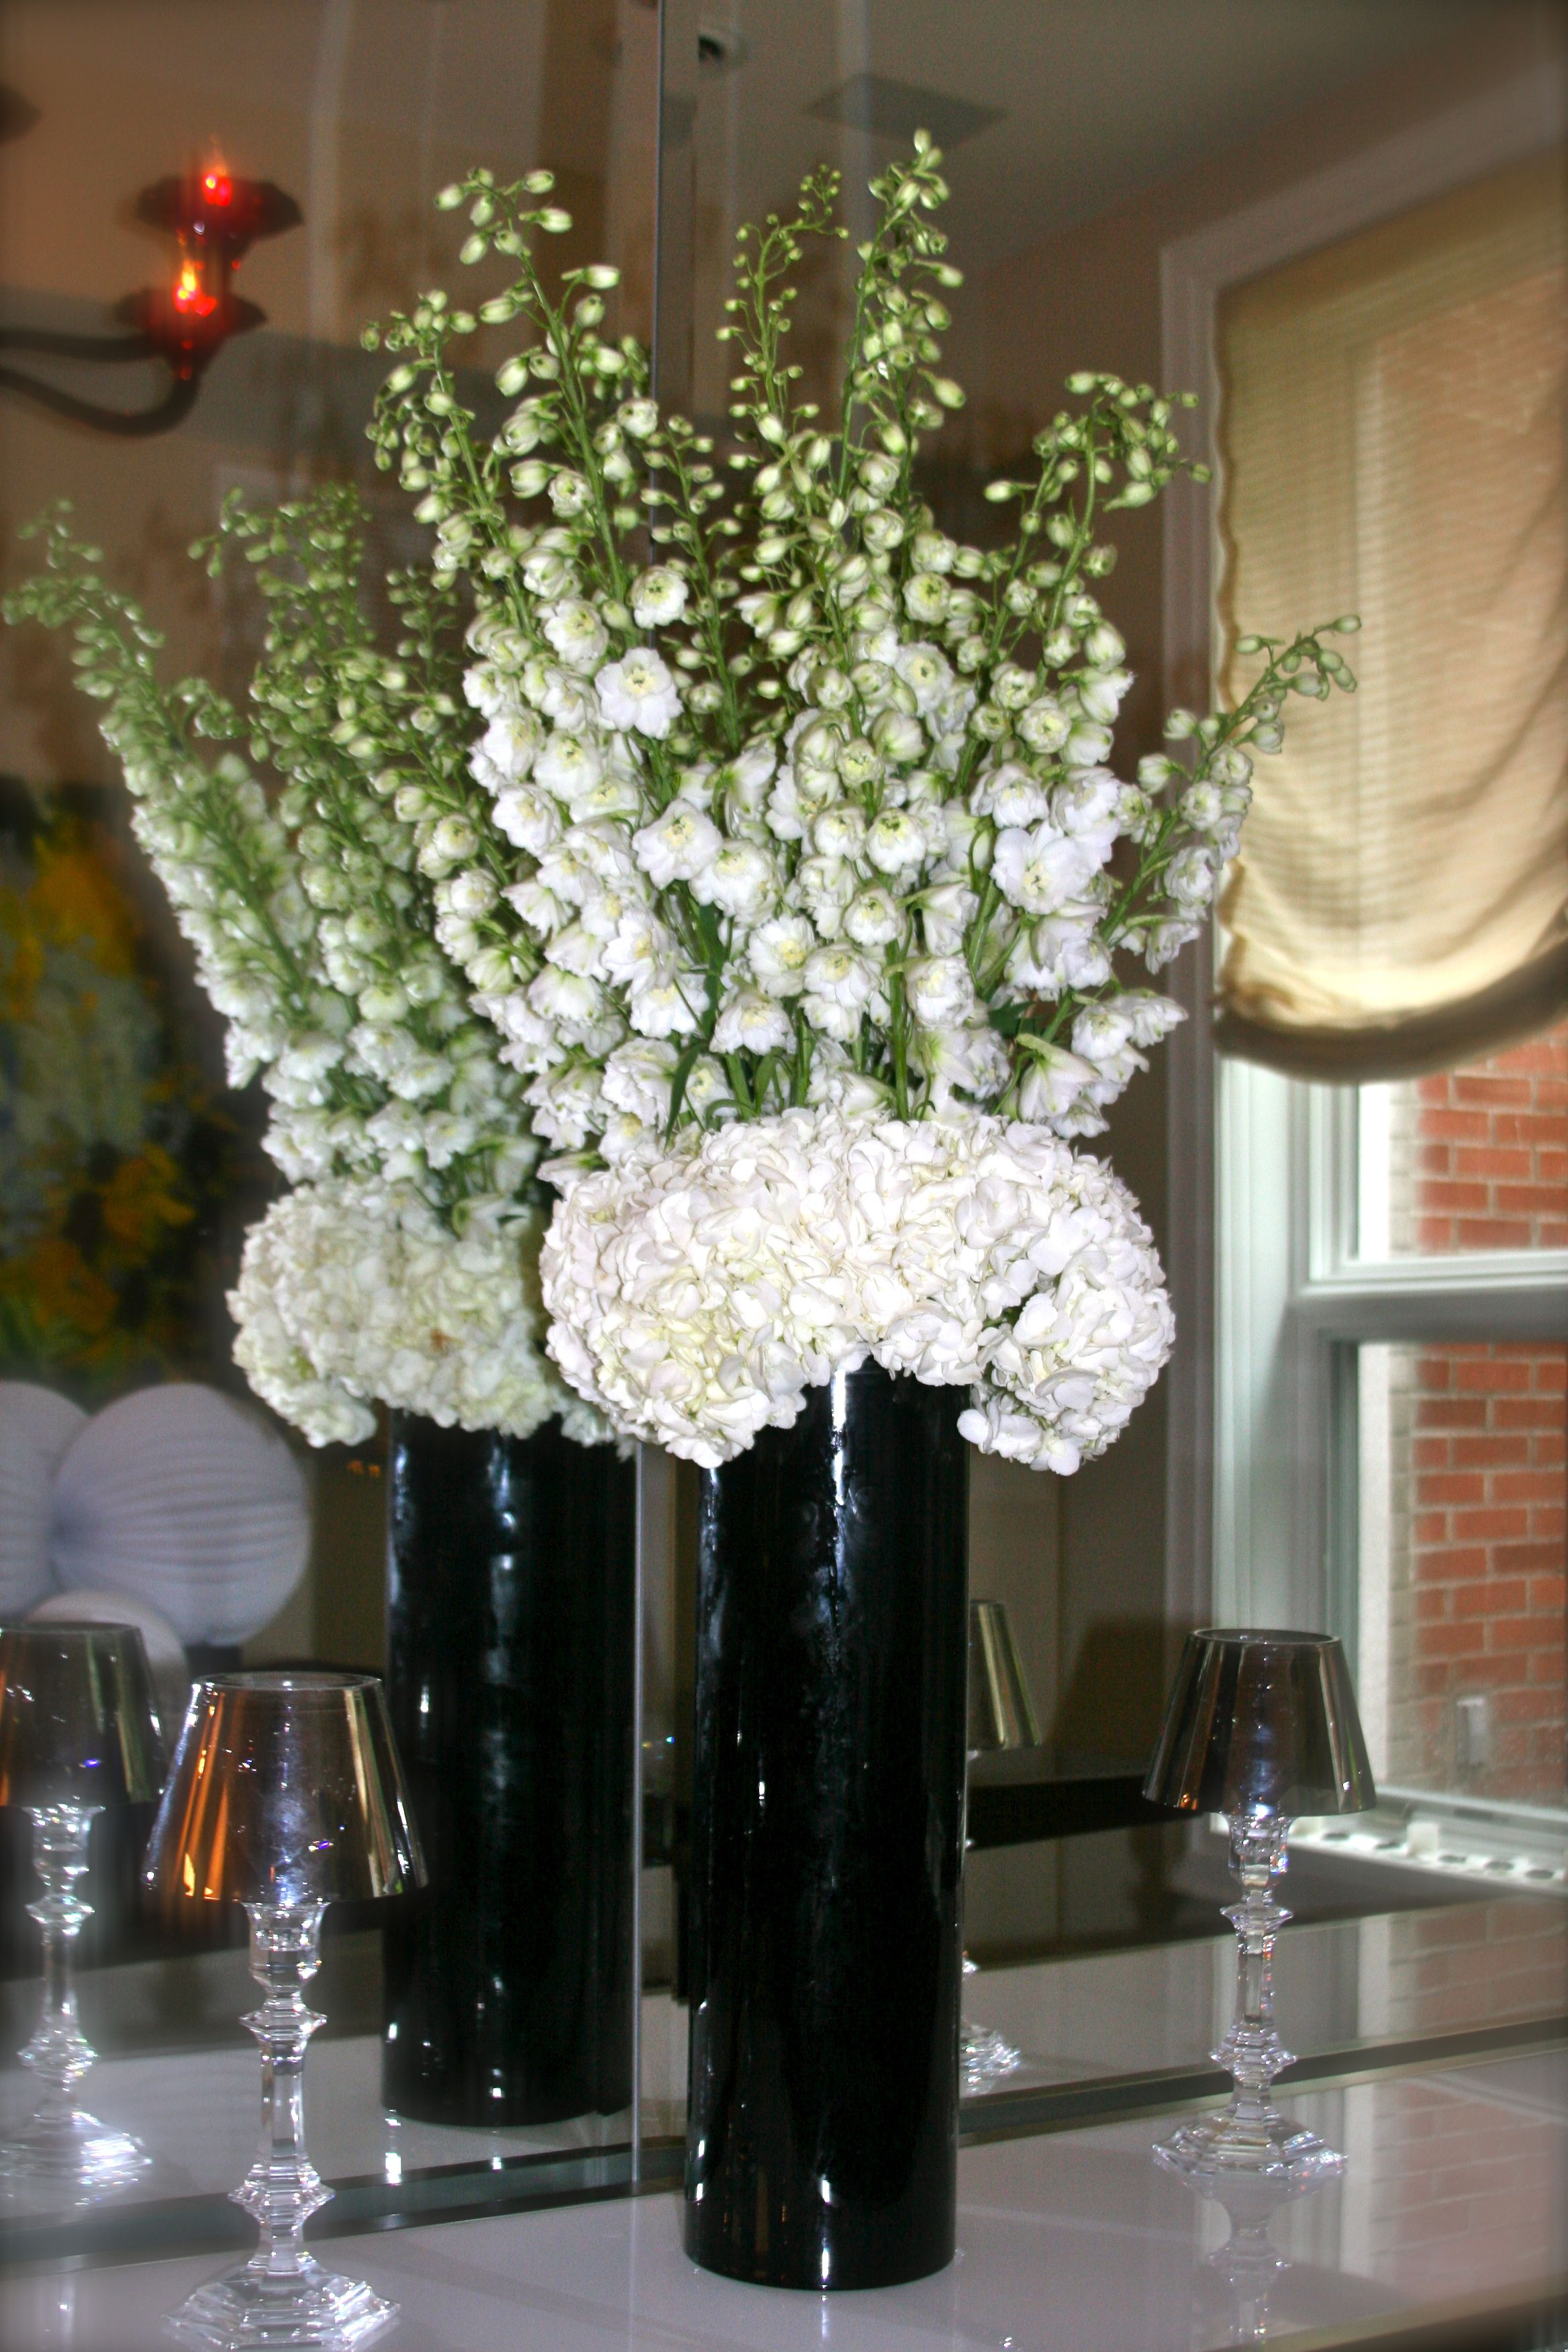 Dramatic Black & White floral arrangement created by Matles Florist